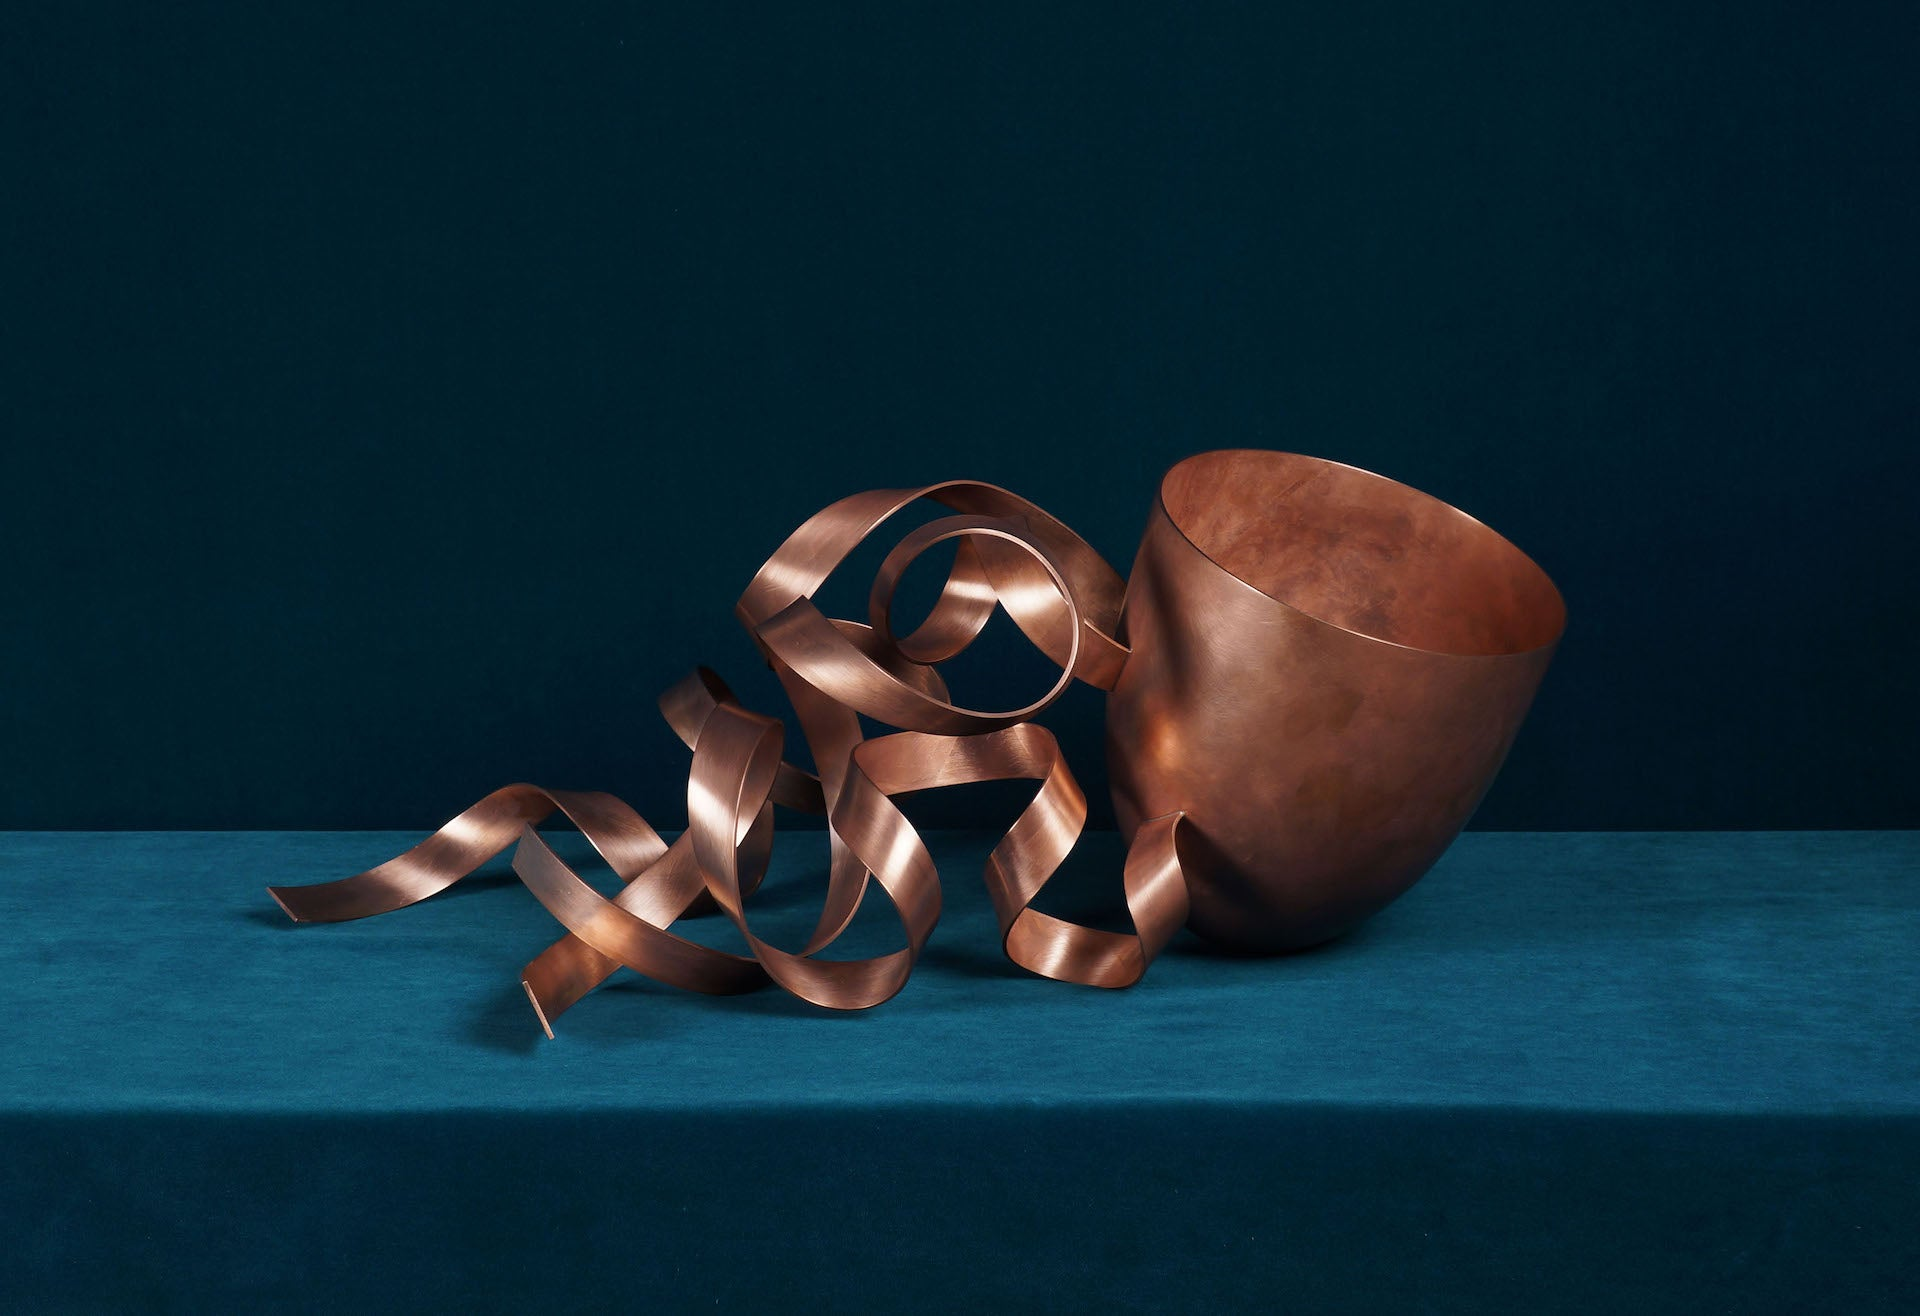 Number One Copper Bowl by Ane Christensen, included in Adaptation at Culture Object. Photo © Culture Object